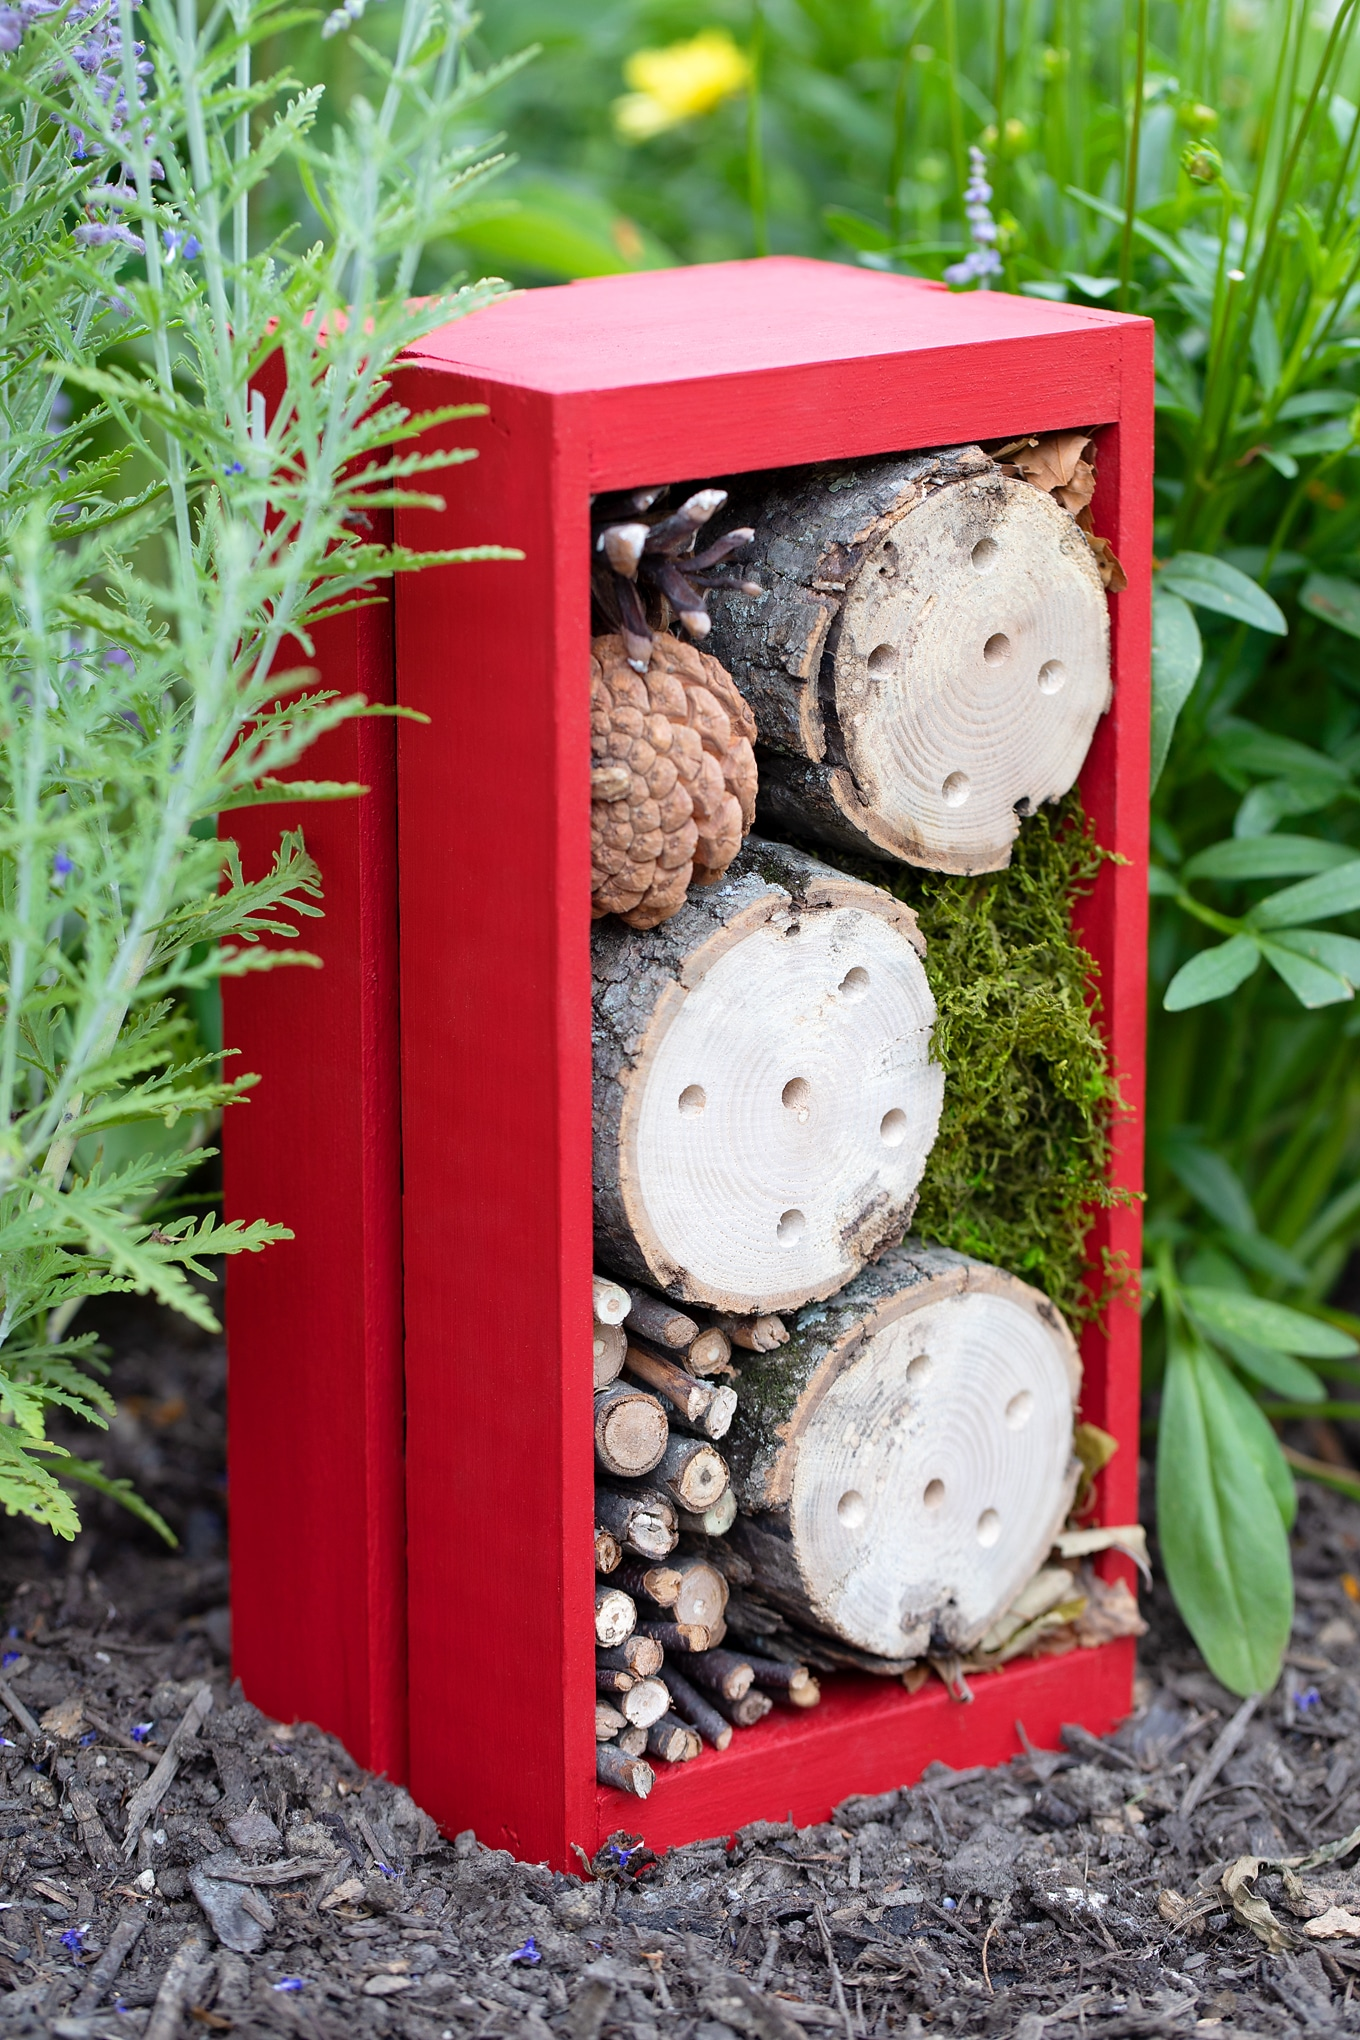 Learn how to make an easy DIY bug hotel with a wooden CD crate, logs, and other natural materials such as pine cones, sticks, moss, and leaves! via @firefliesandmudpies